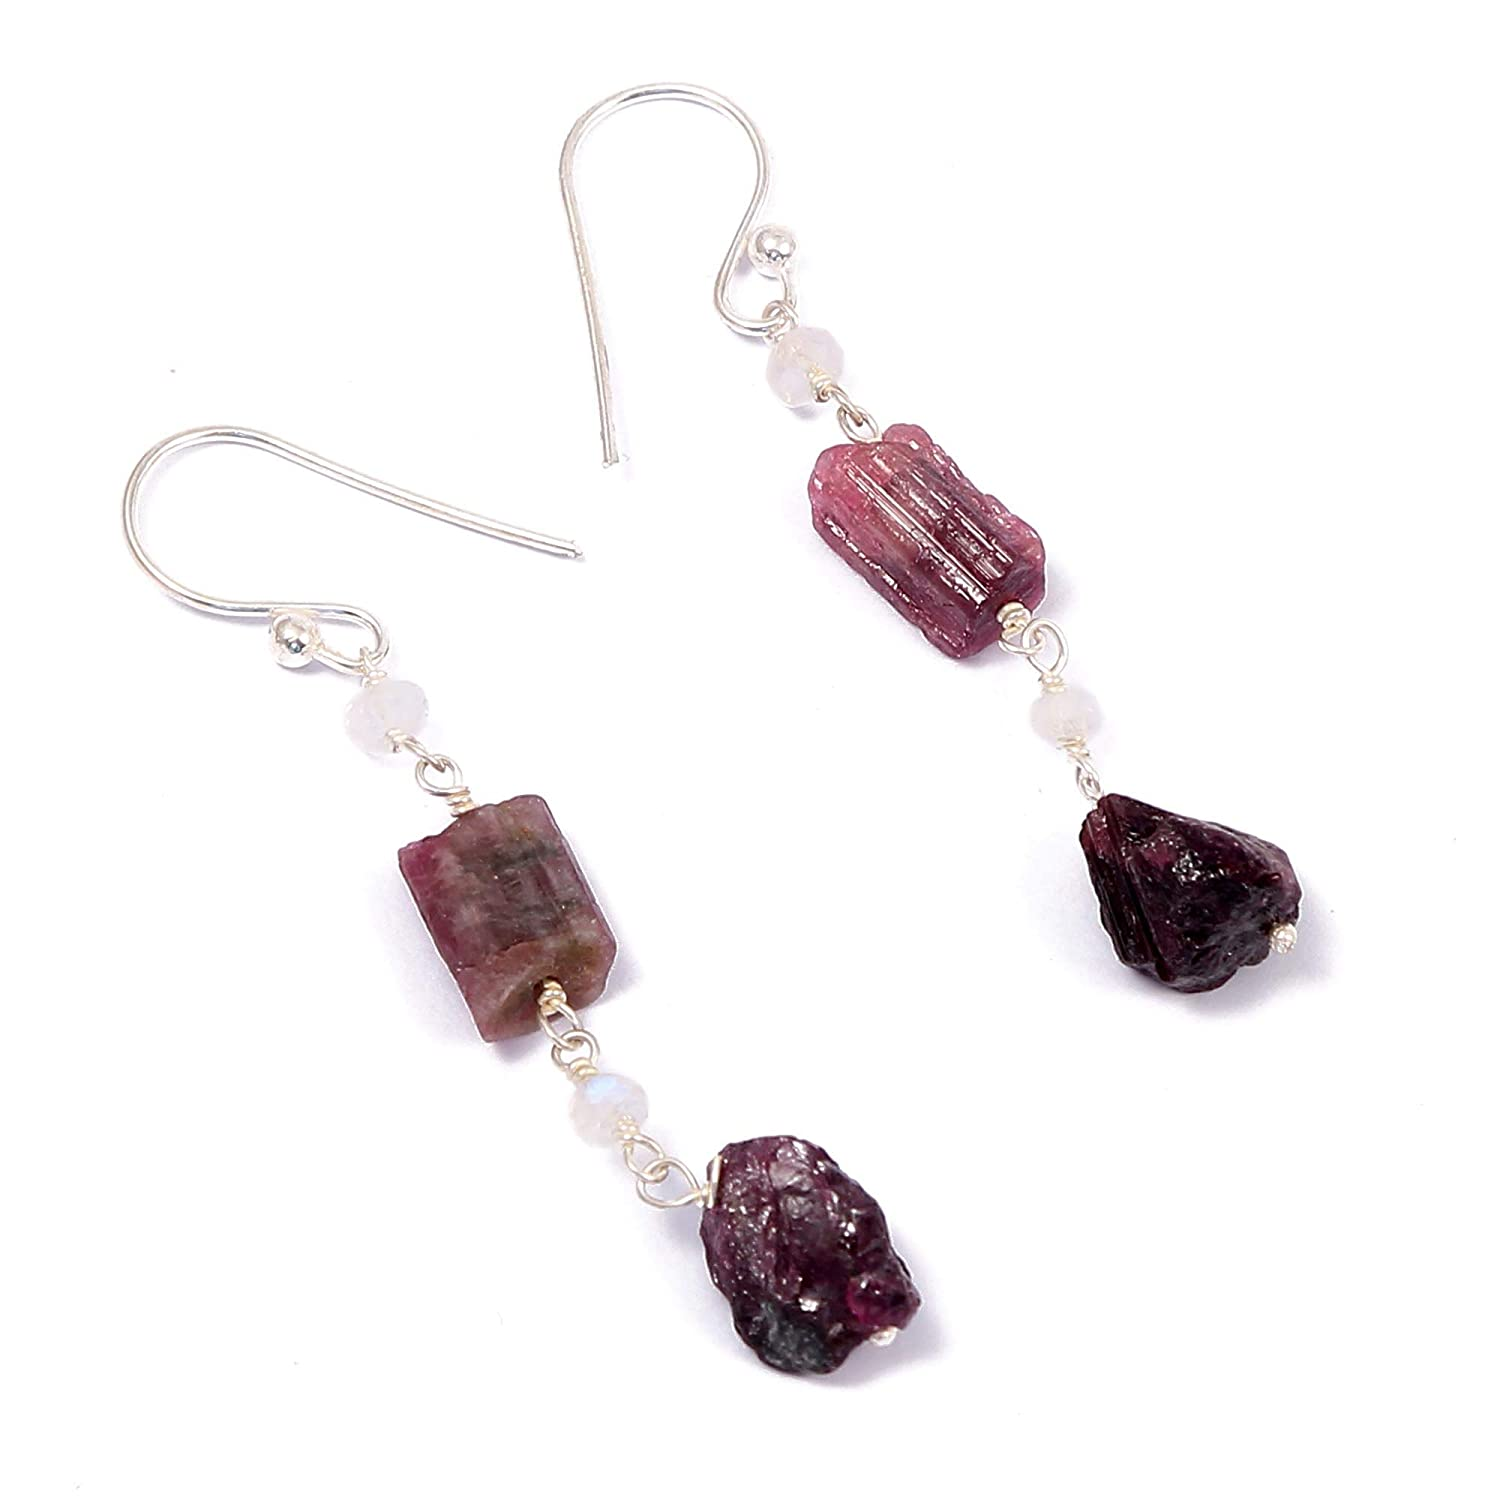 Handcrafted Designer Charm Jewelry ❤️❤️100/% Natural Tourmaline Rough with Moonstone Rainbow Beads ️Dangle Drop Earrings❤️❤️ 925 Sterling Silver Multicolor Color Gift for Women Girls Ladies